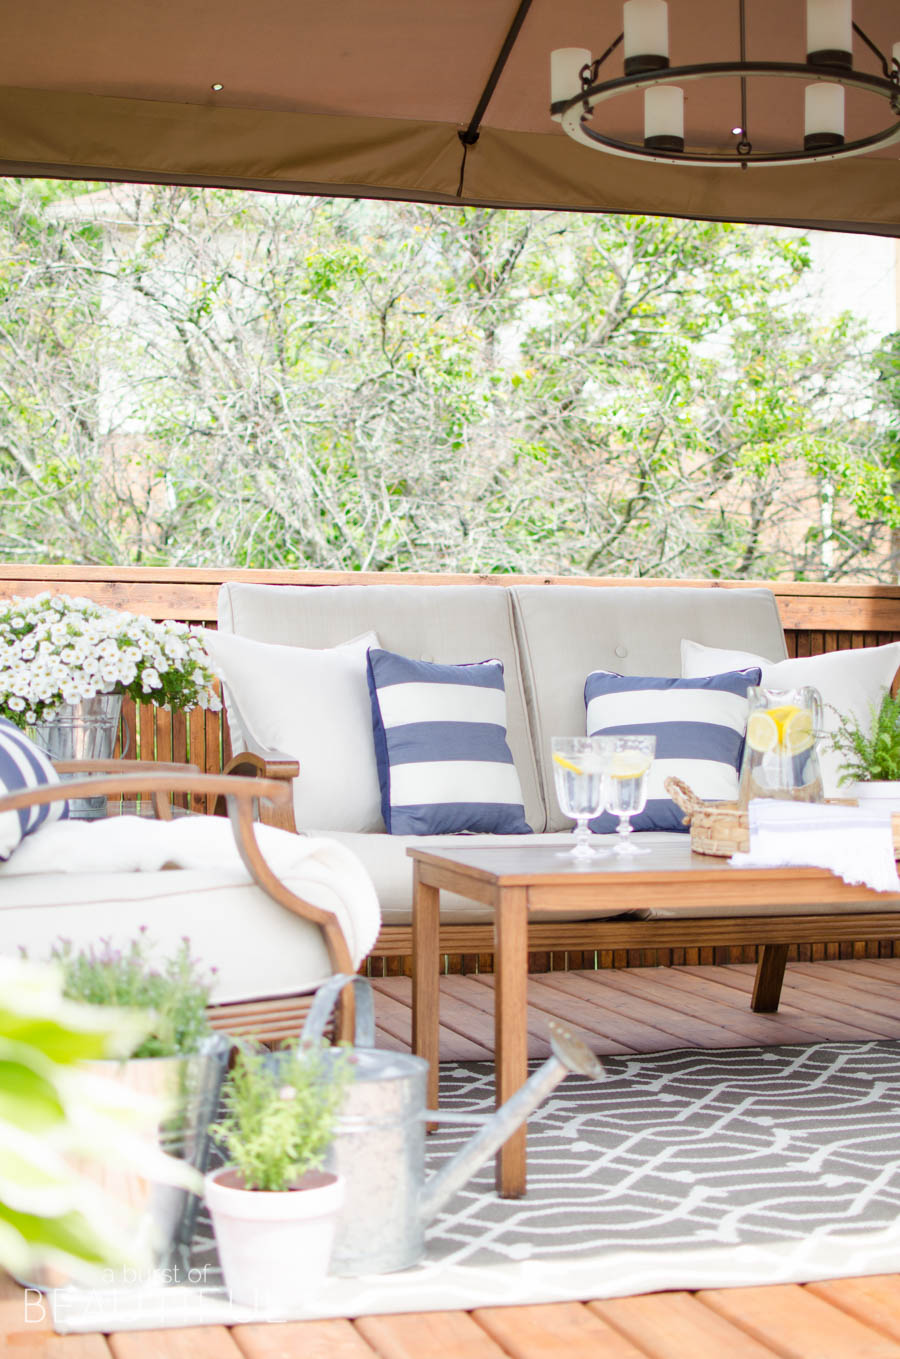 Tips For Creating A Cozy Outdoor Living Space + Video   A Burst Of Beautiful